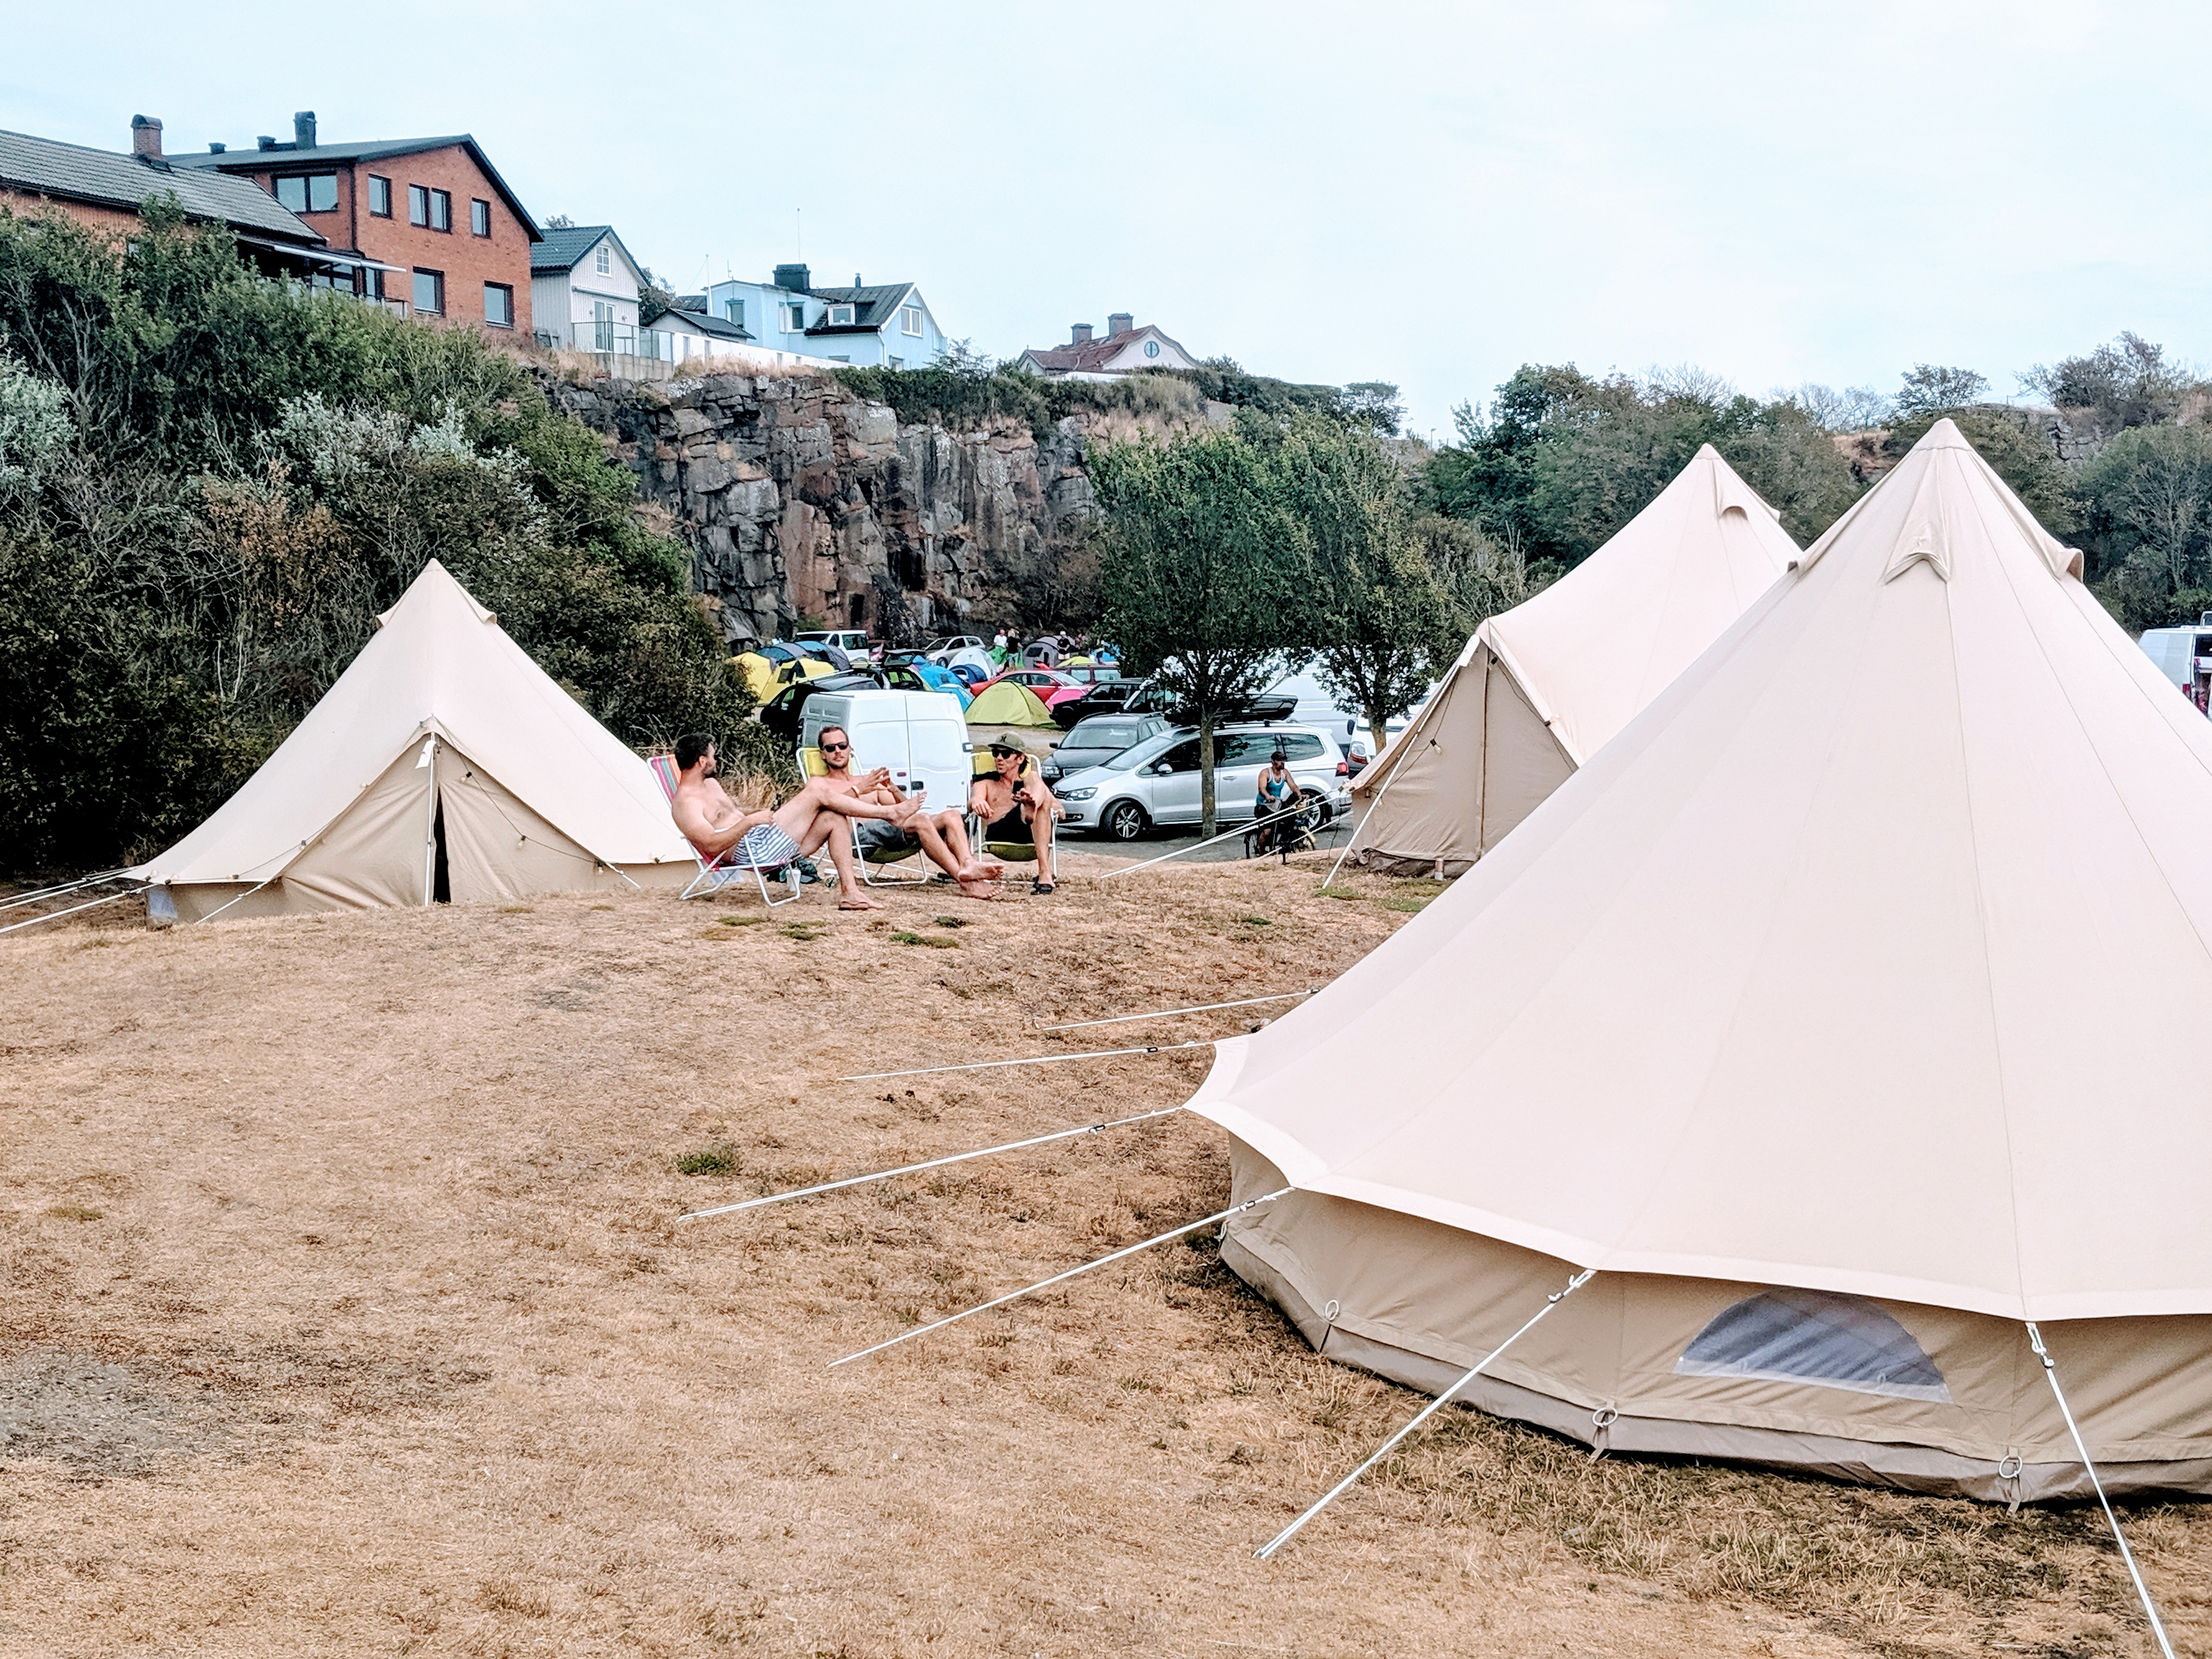 The sun always shines at Hallifornia! - Nordic Stretch Tents